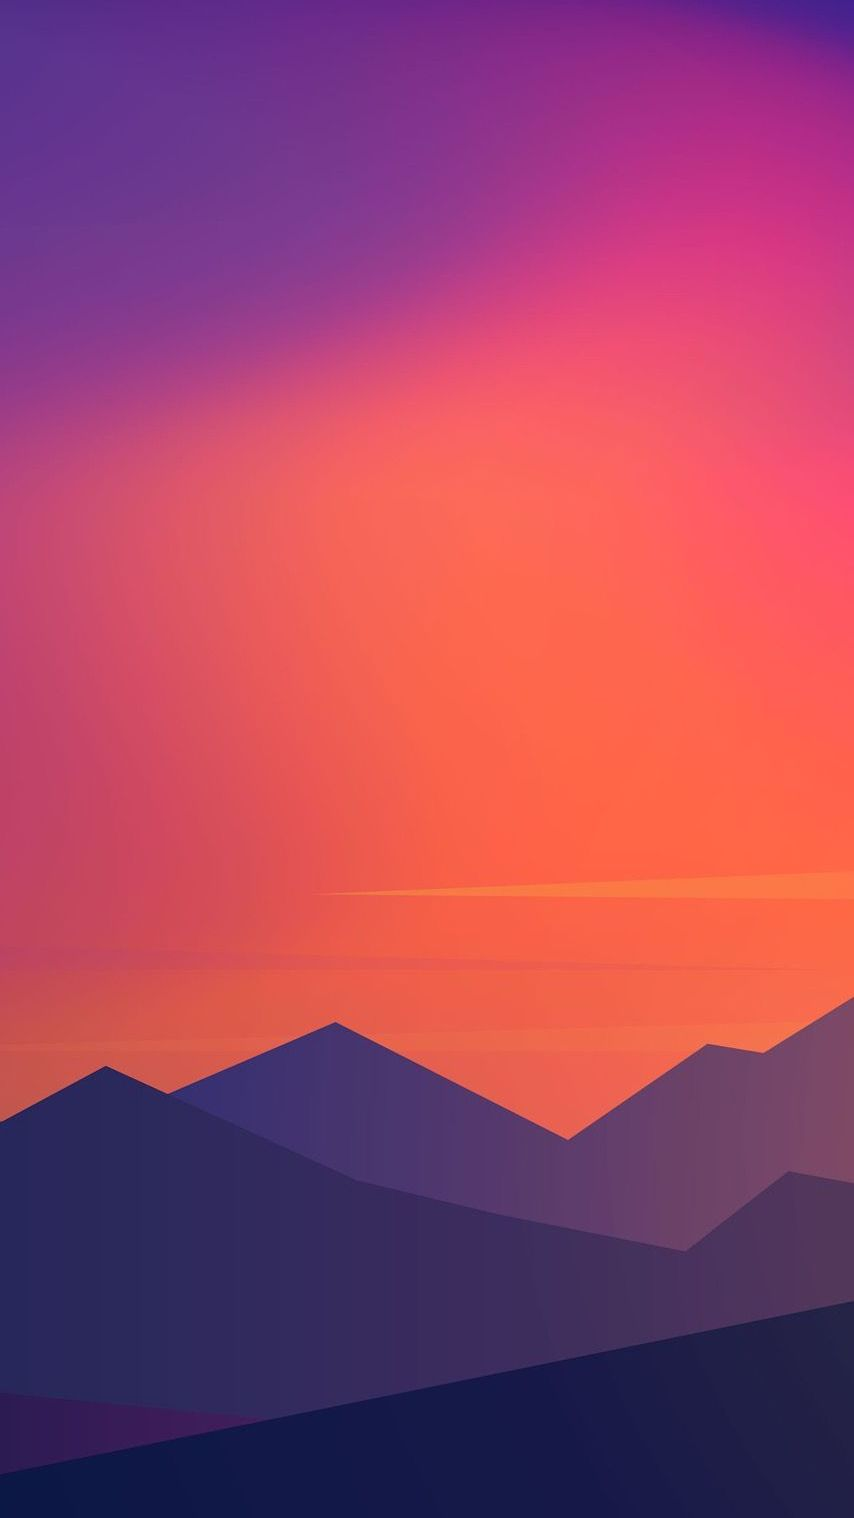 Hd Sunset Aesthetic Wallpapers Posted By Zoey Johnson